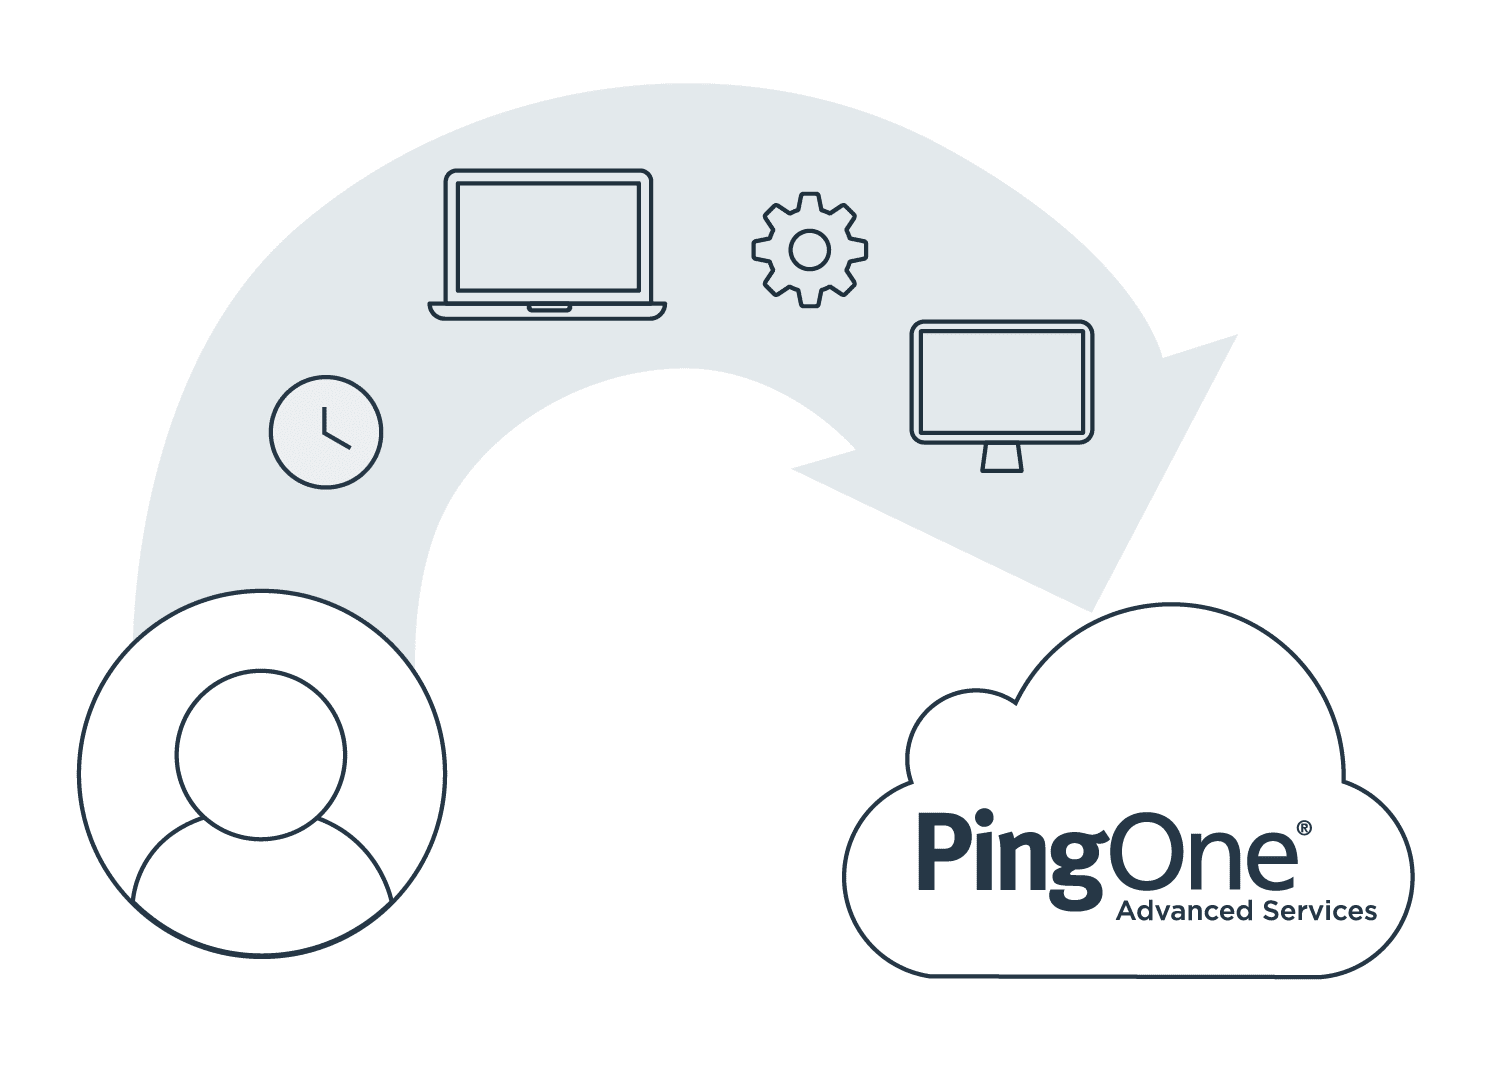 PingOne Advanced Services